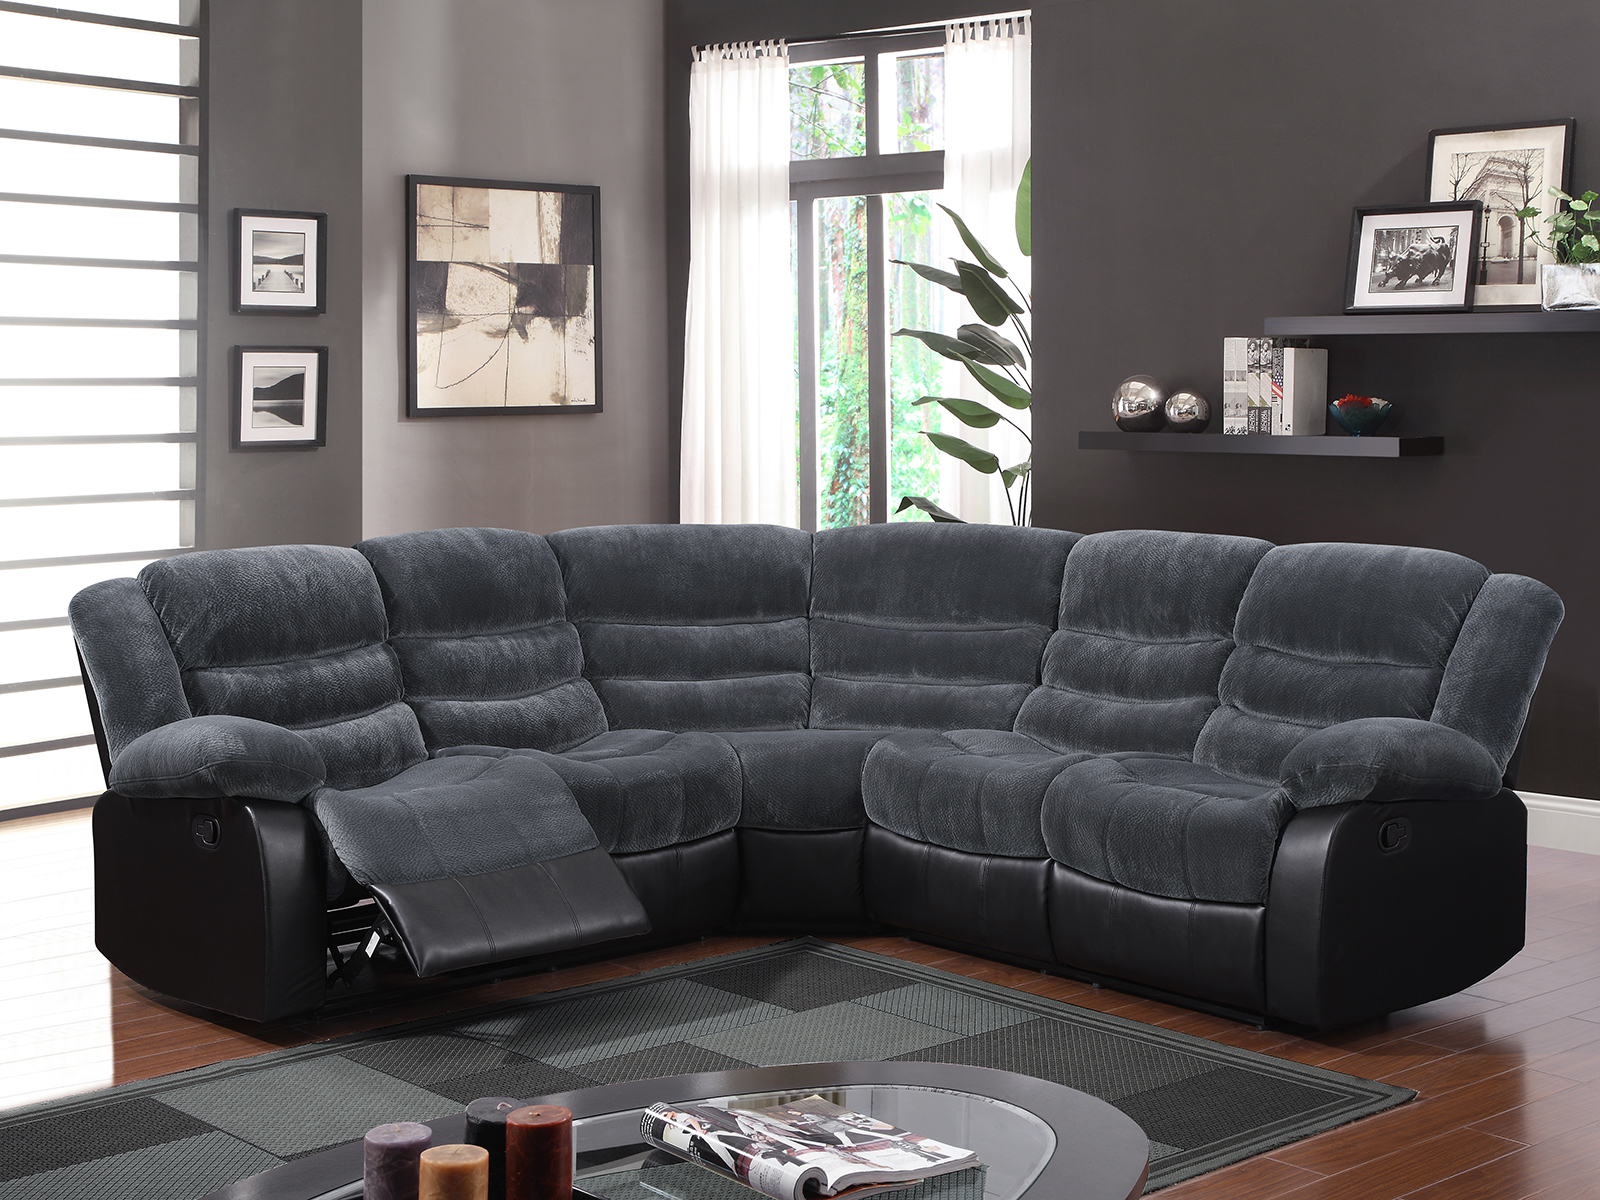 liberty 2 piece sofa and motion loveseat group in grey 3 seat length global furniture u93935 sectional champion